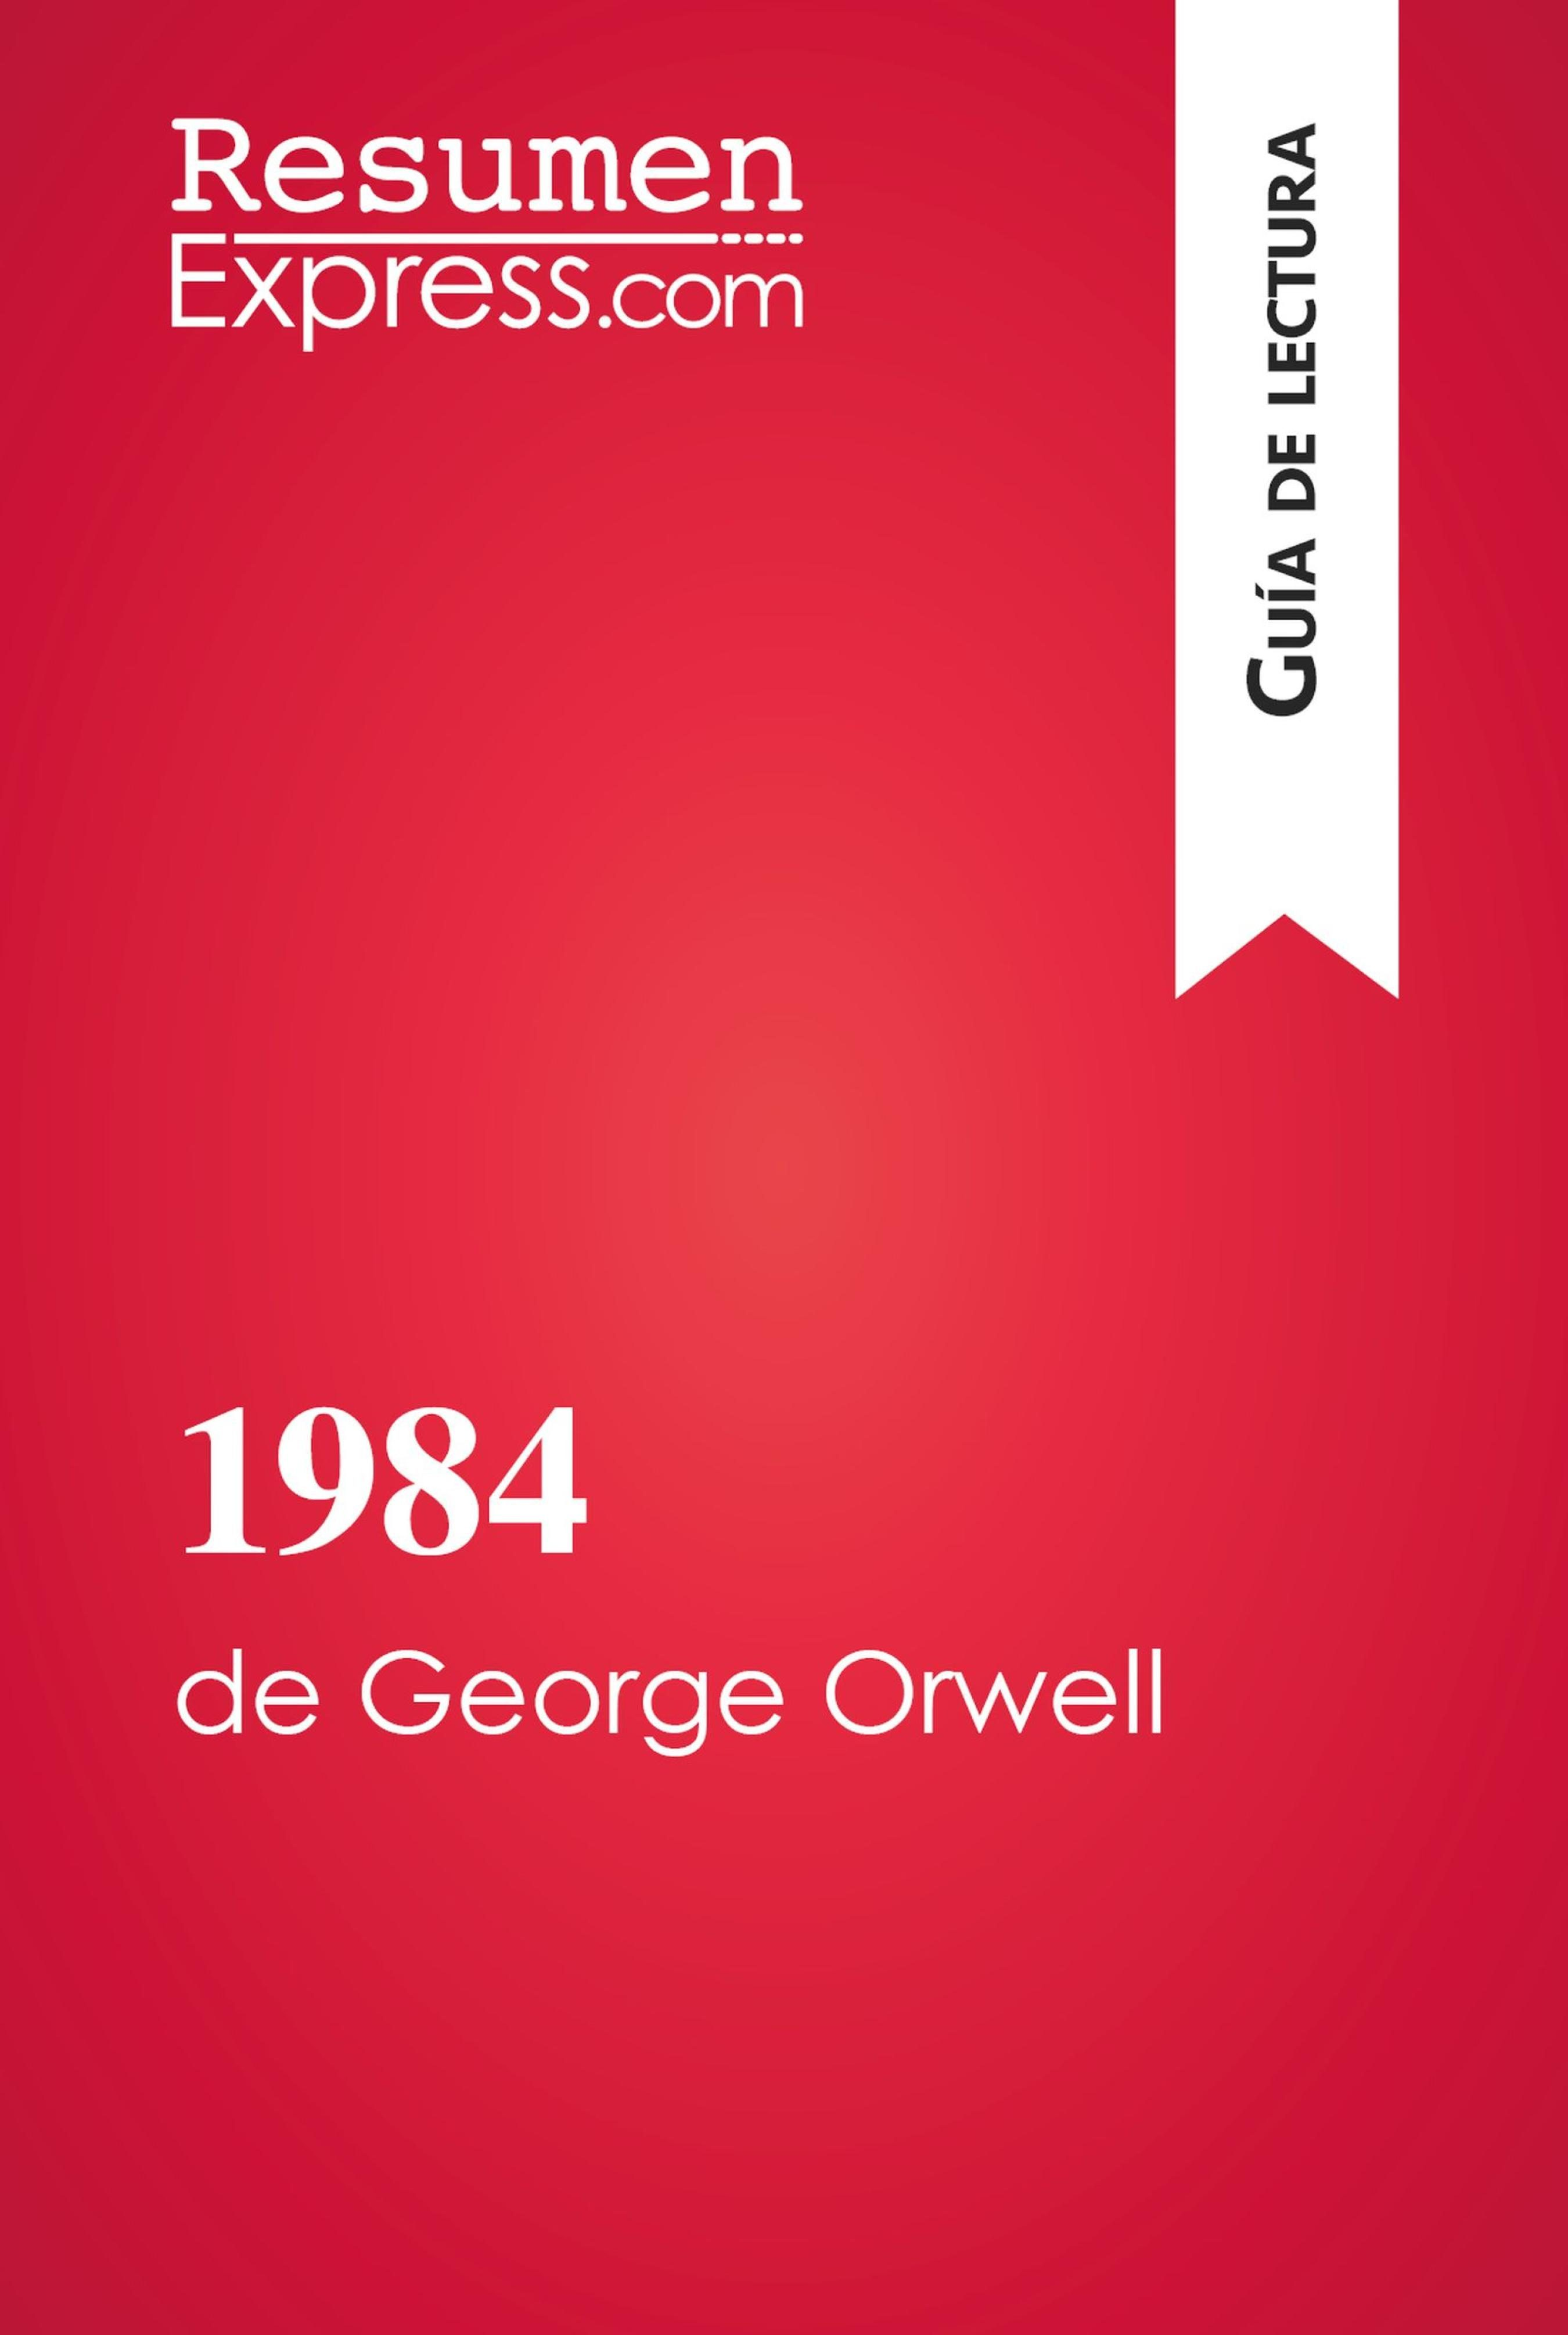 an analysis of the language used in 1984 a novel by george orwell 1984 by george orwell is a dystopian satire with plenty of instances of irony gain a better understanding of the use of irony at work with these quotes from the book.